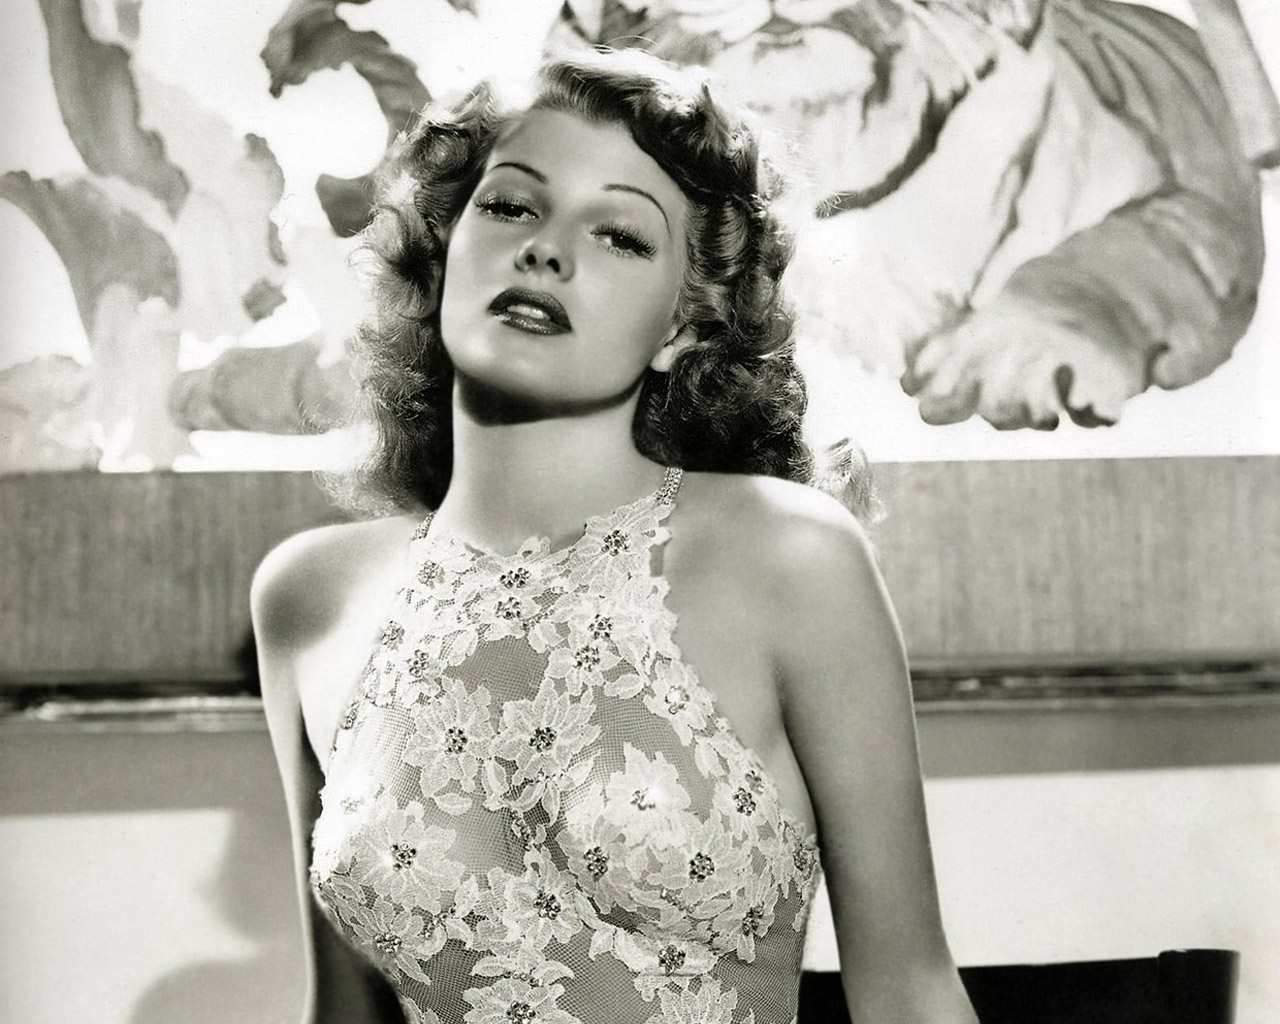 http://www.fromrss.com/wp-content/uploads/2012/01/ritahayworth_2007.jpg